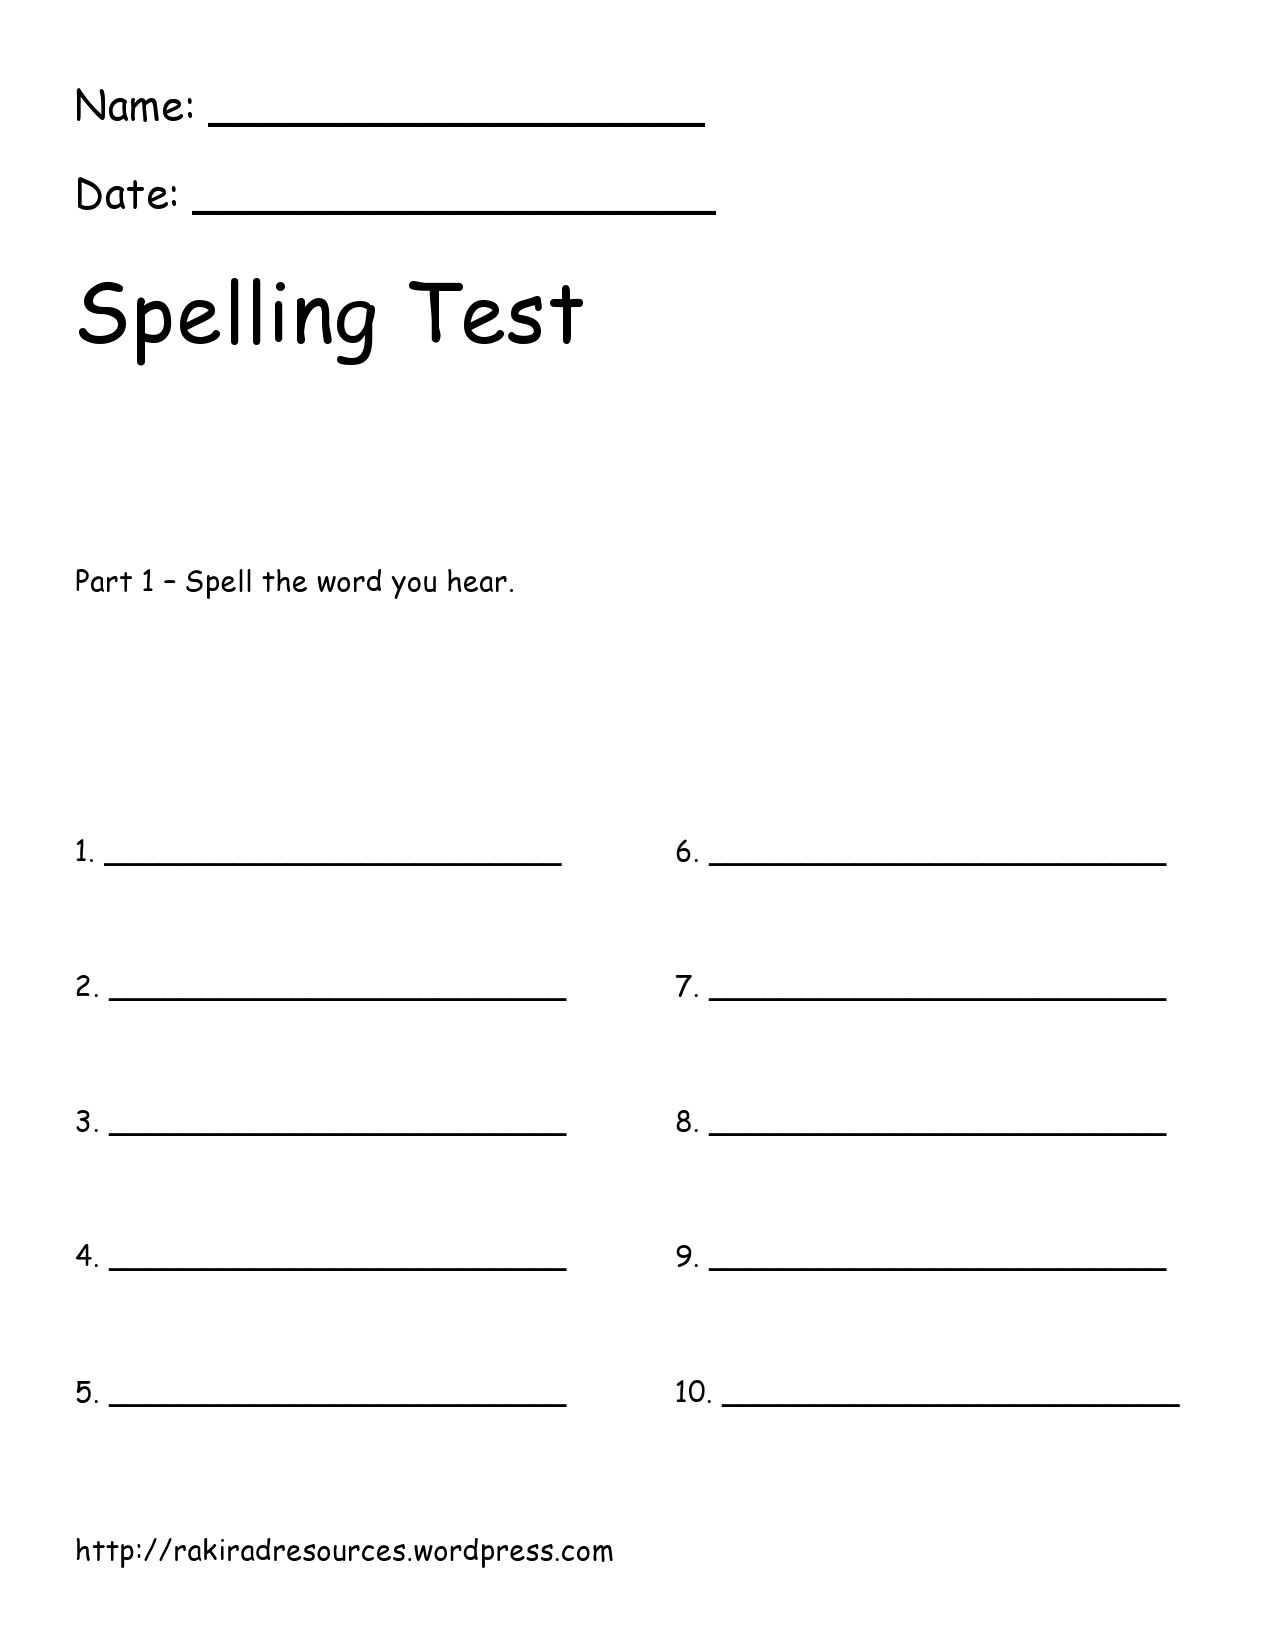 38 Printable Spelling Test Templates Word Amp